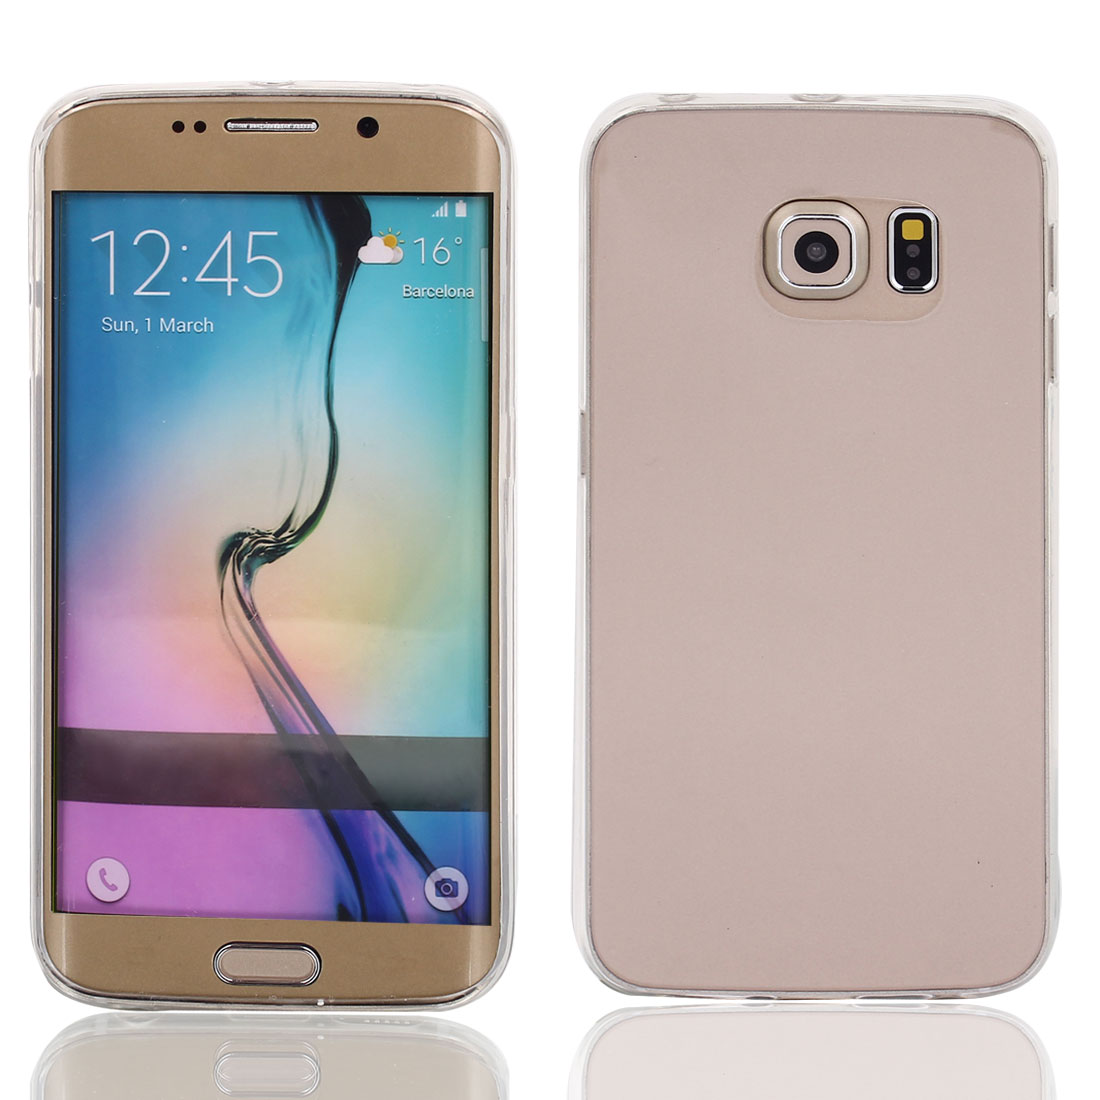 Soft TPU Case Cover Protective Transparent Clear for Galaxy S6 Edge G9200 G9250